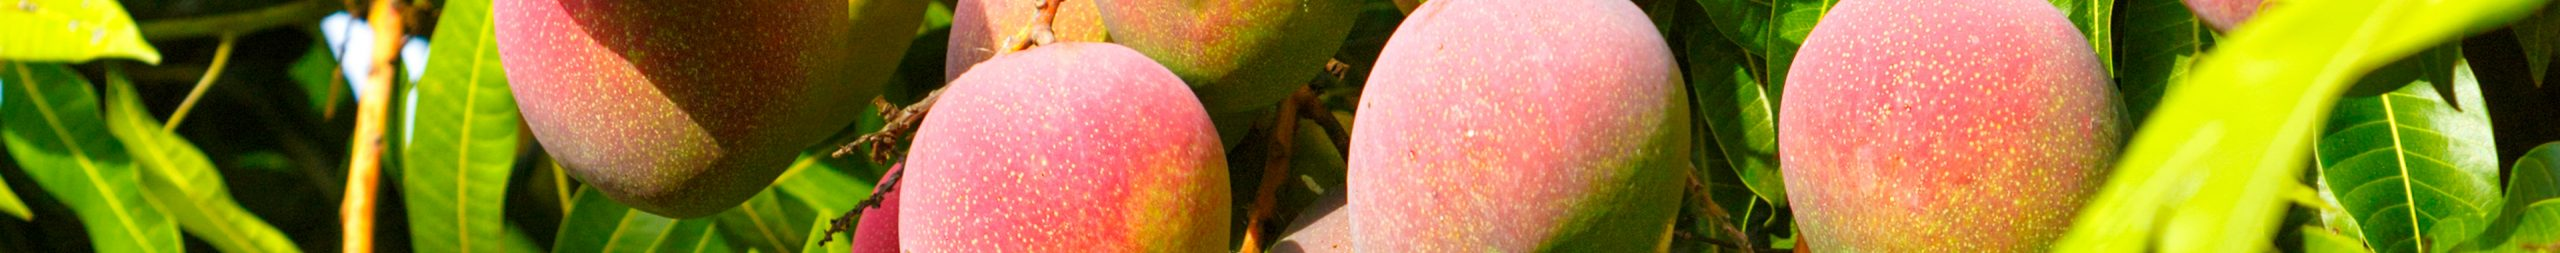 mango banner - website